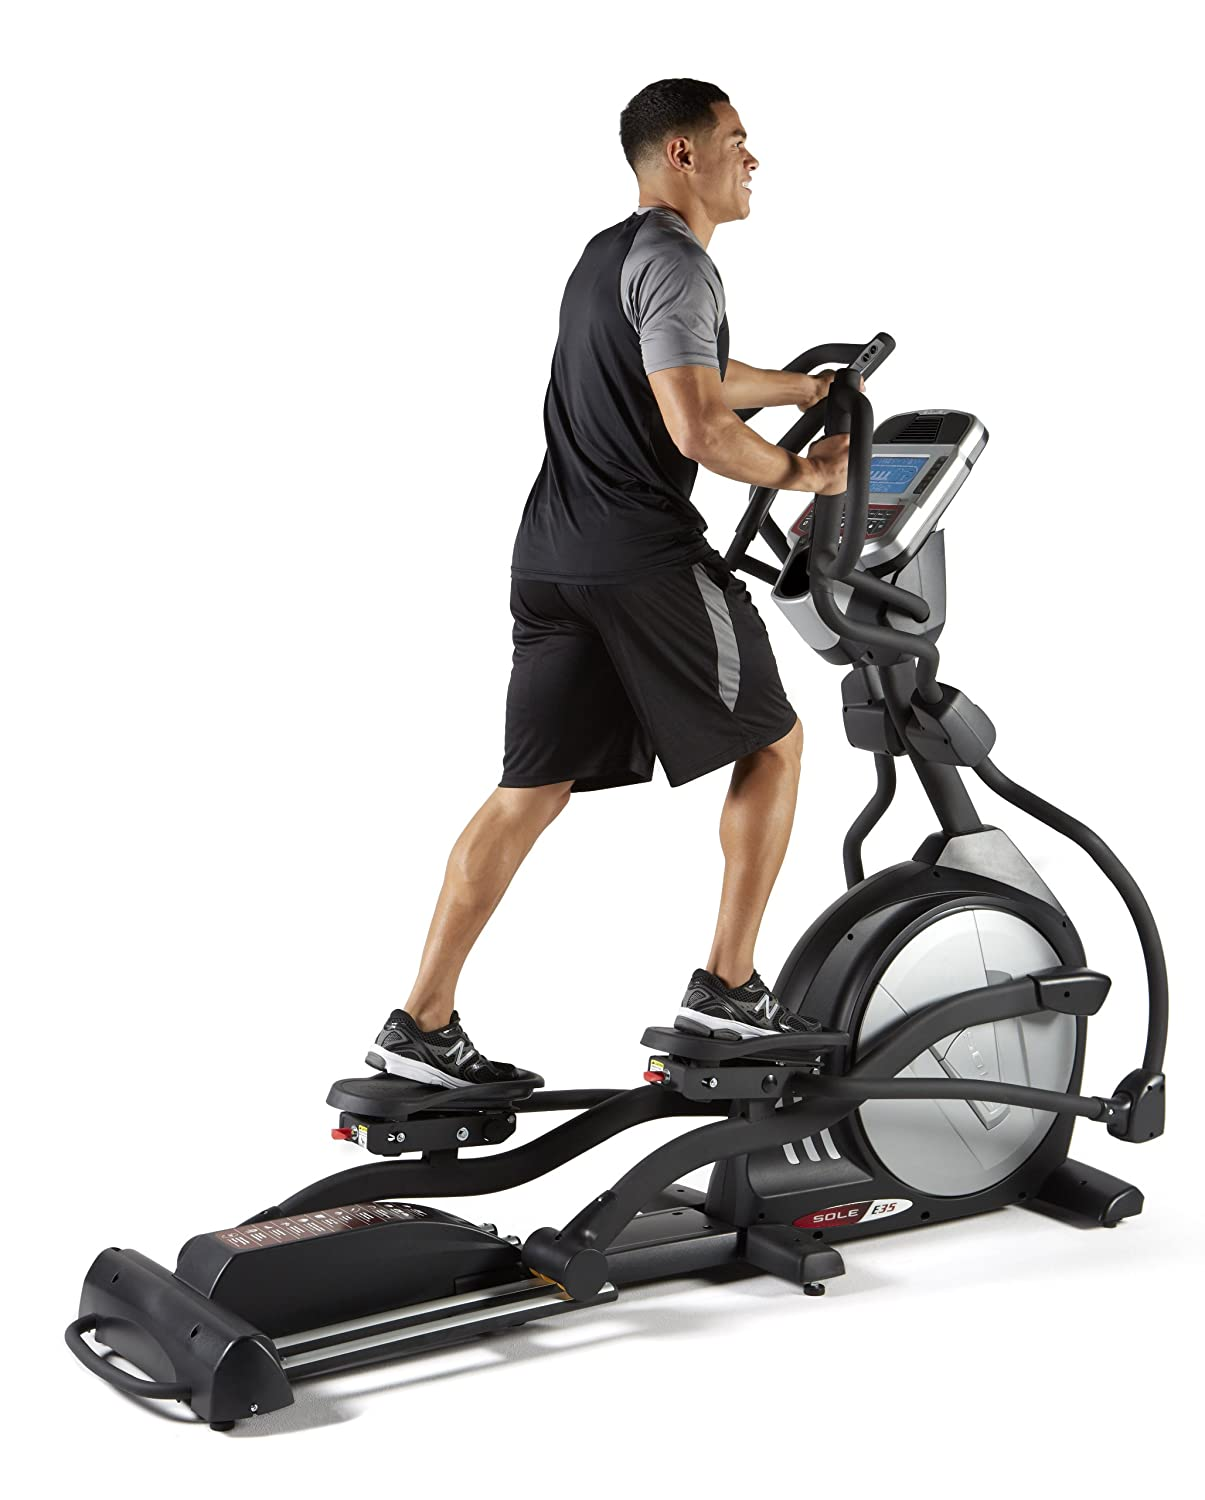 Sole Fitness E35 Elliptical Machine (New 2013 Model) $1,039.99